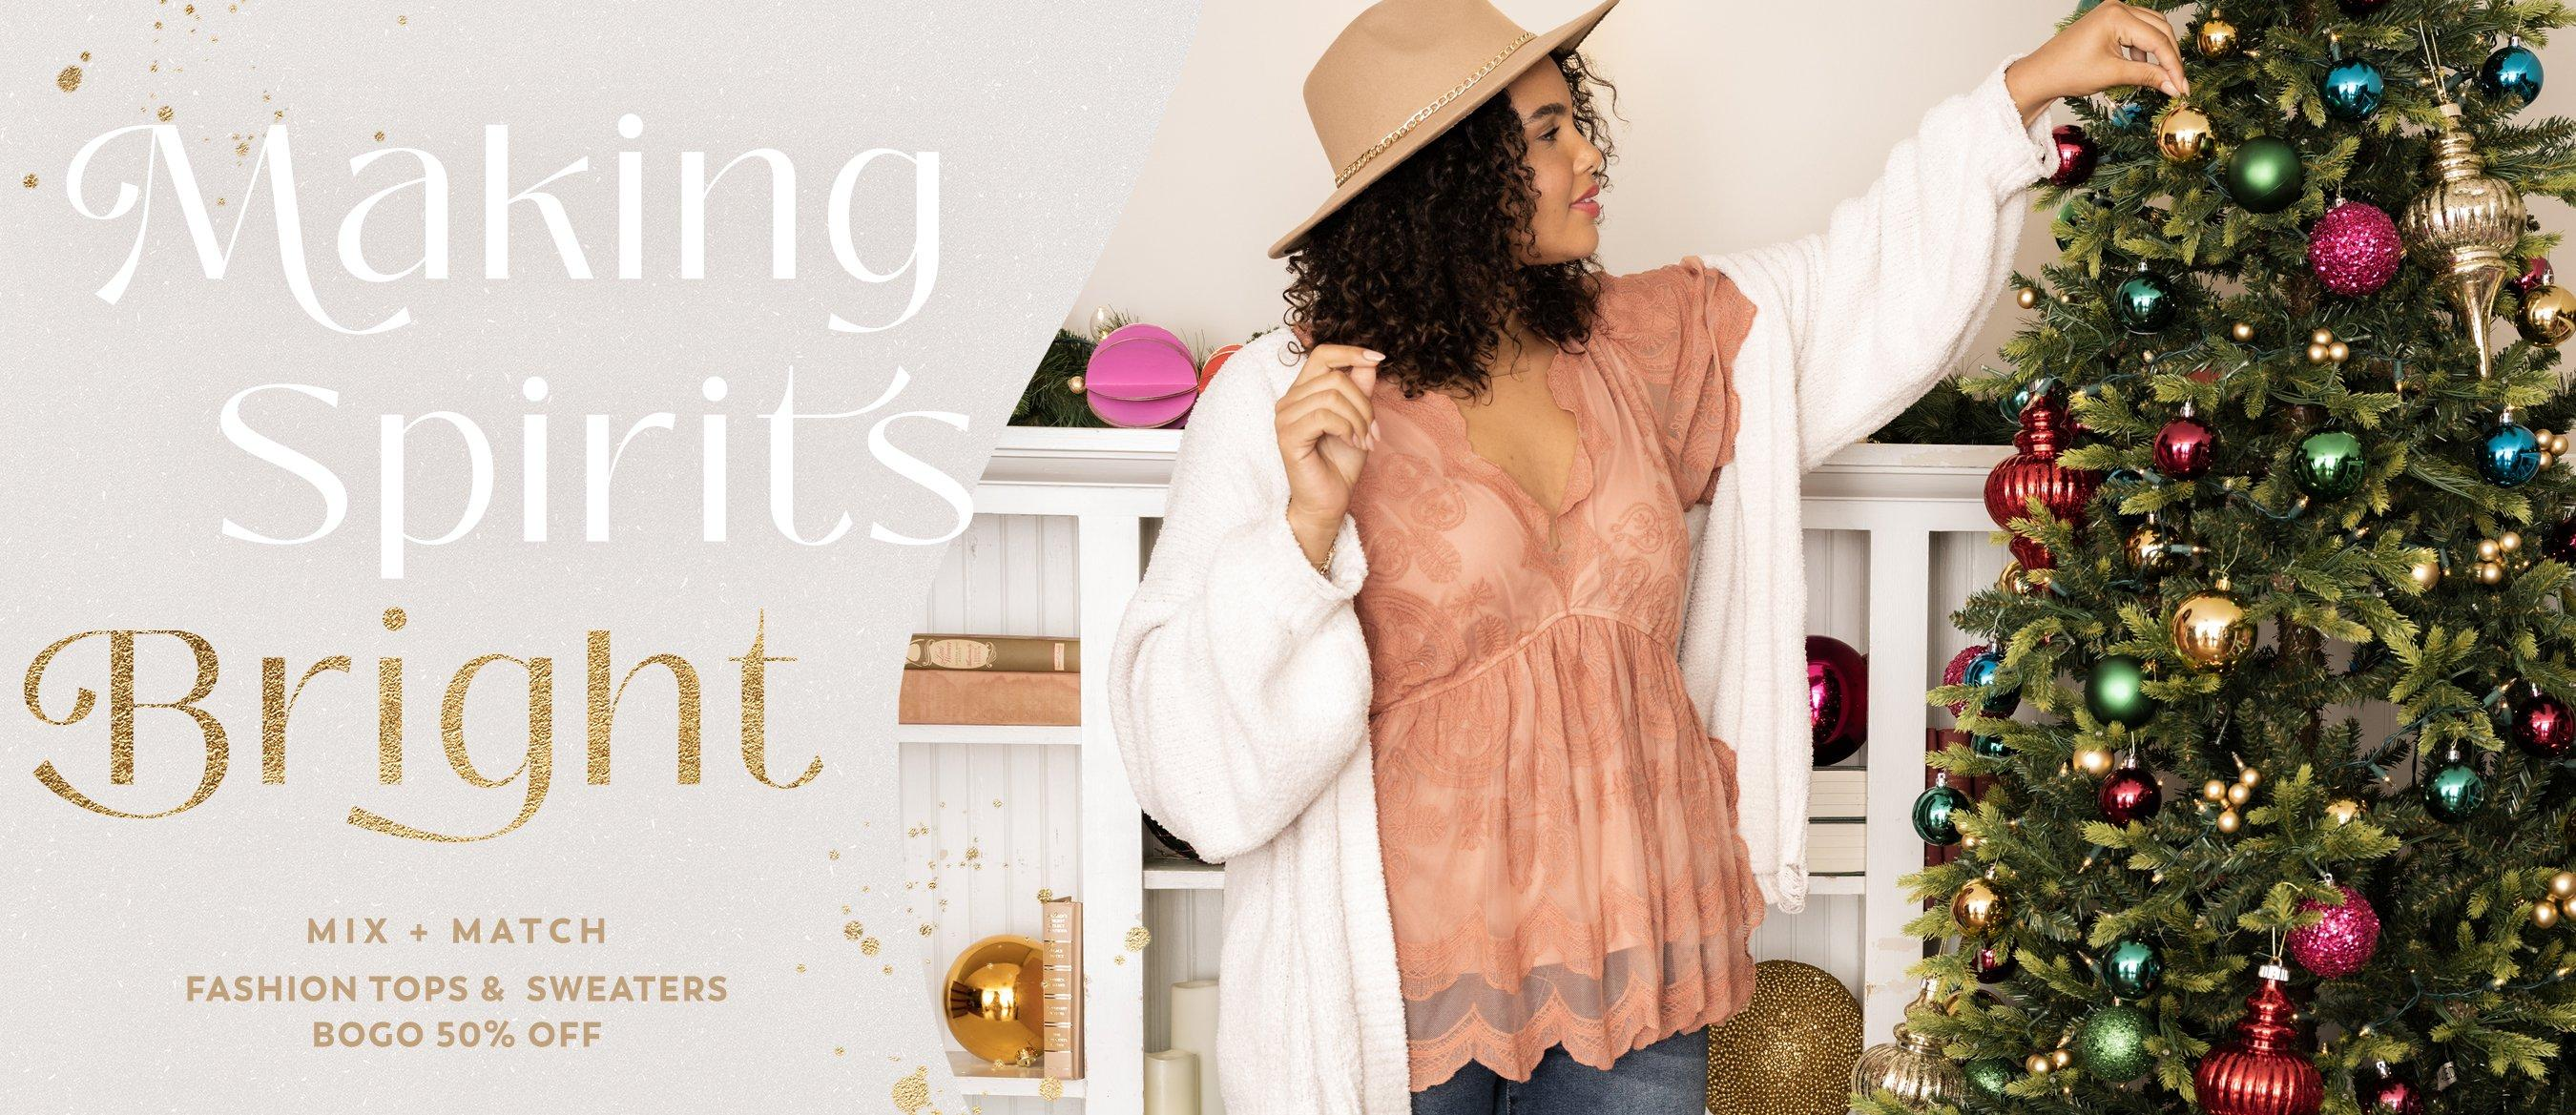 Shop Fashion Tops and Sweaters